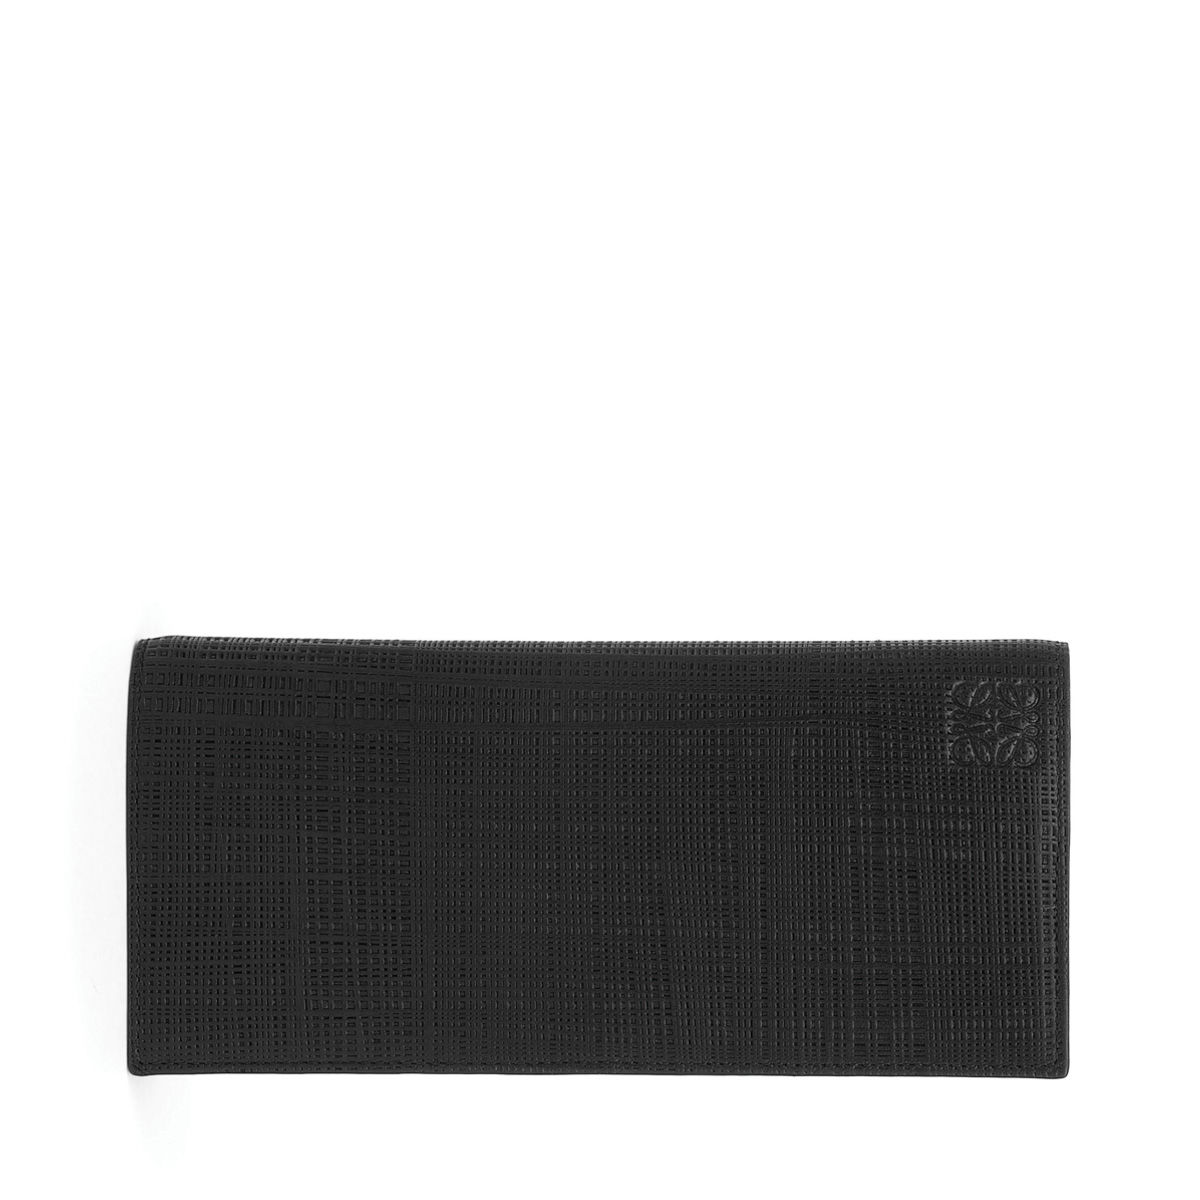 LONG HORIZONTAL WALLET 【送料無料】